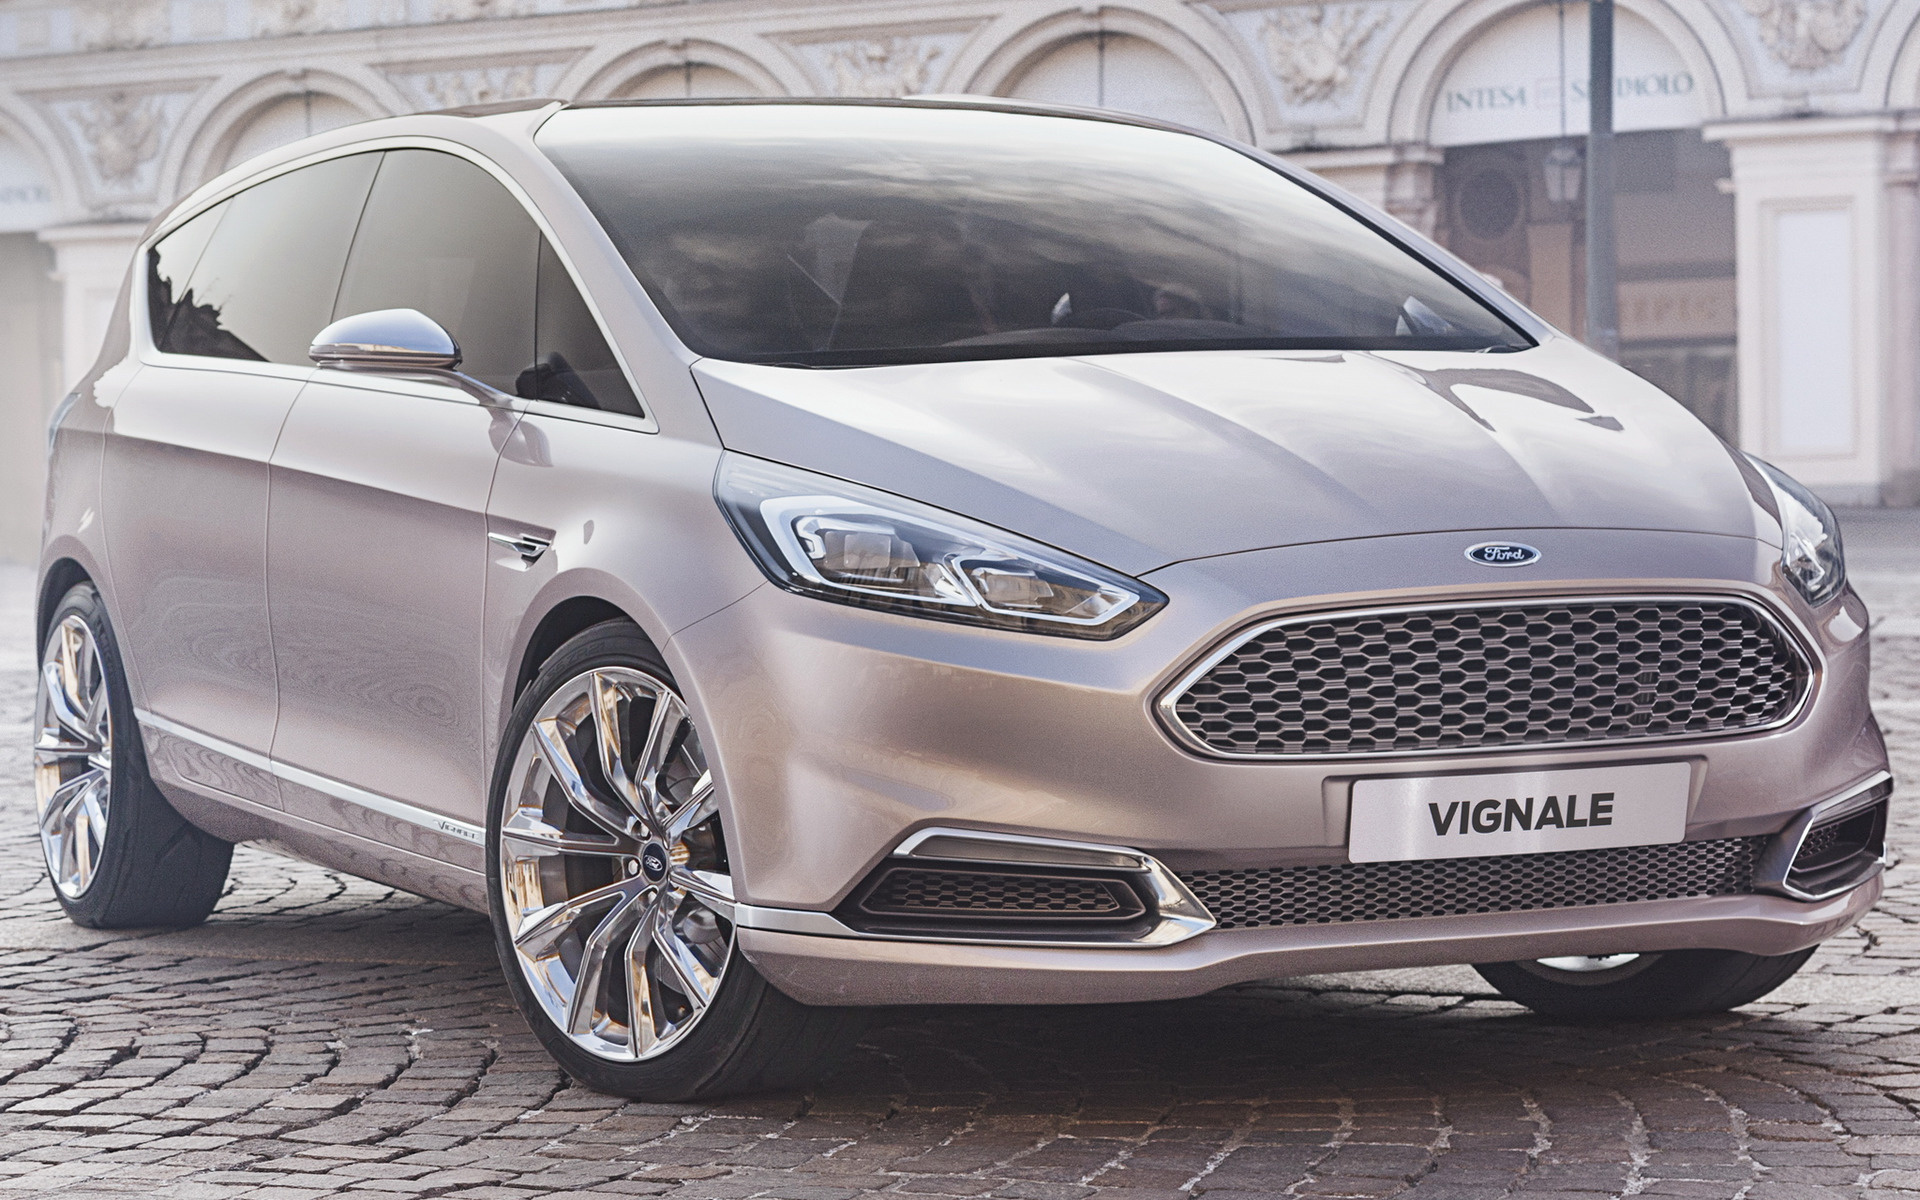 2014 ford s max vignale concept wallpapers and hd images. Black Bedroom Furniture Sets. Home Design Ideas